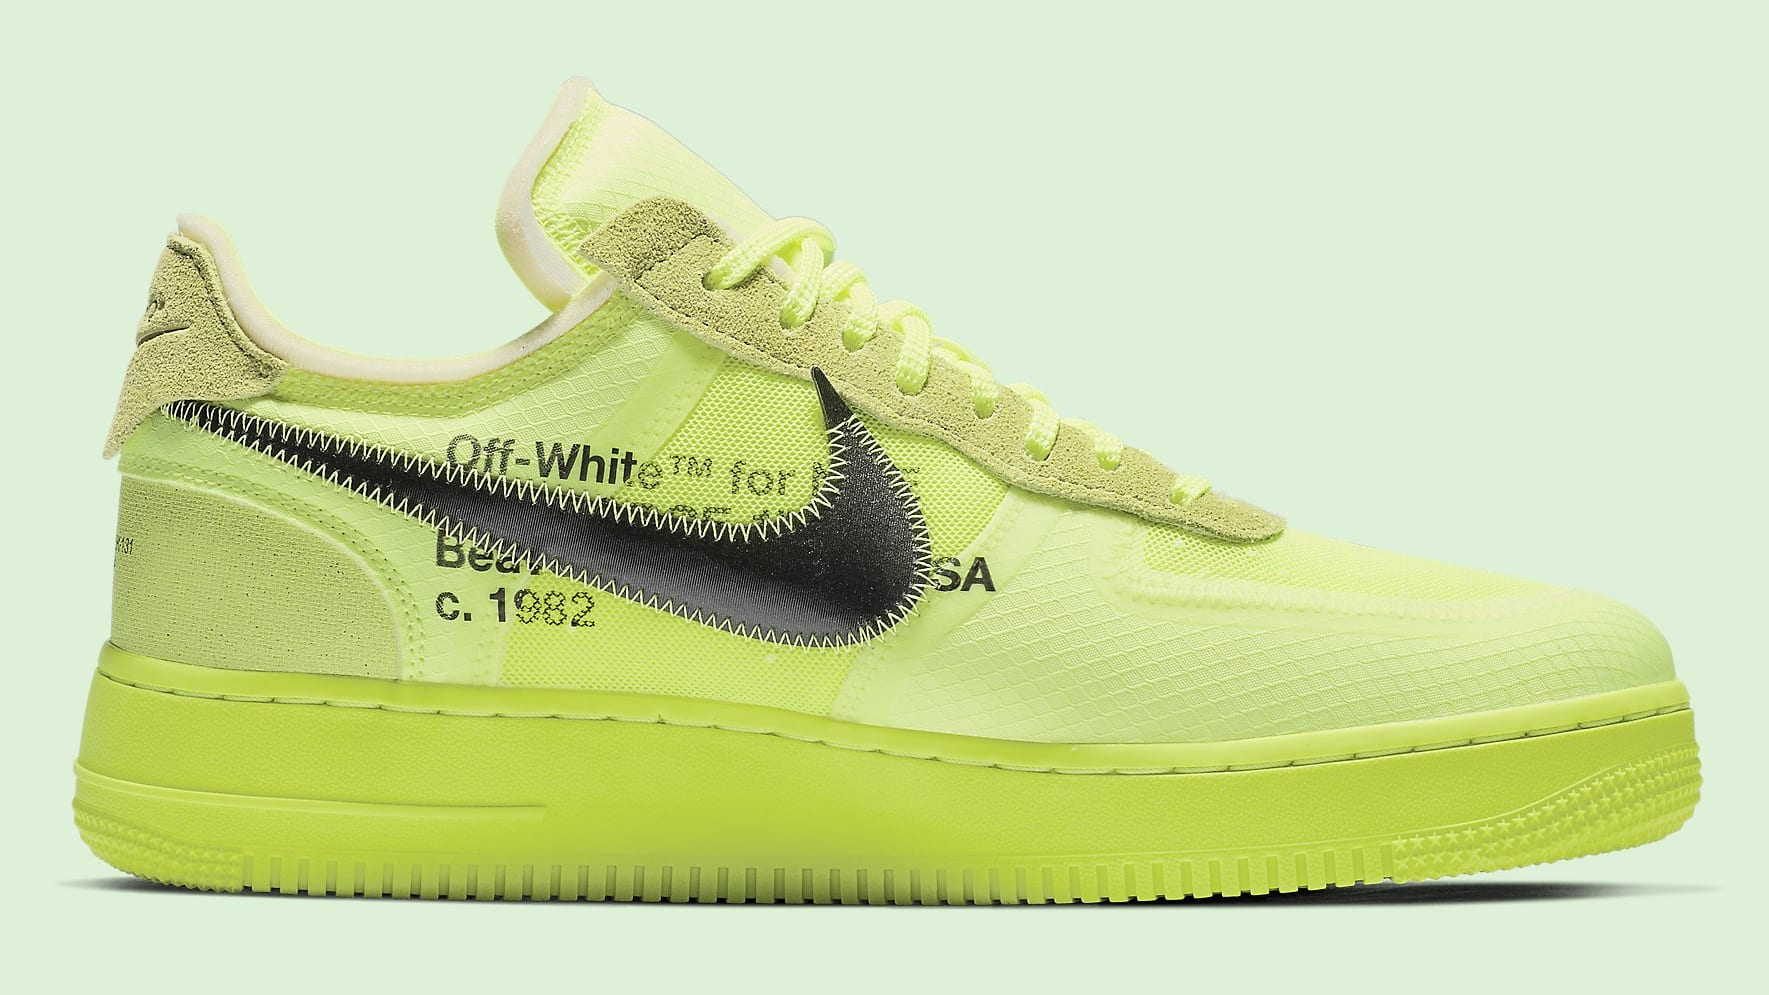 Off-White x Nike Air Force 1 Low  Volt Cone Black Hyper Jade  AO4606-700  Release Date  251d9c81fc8